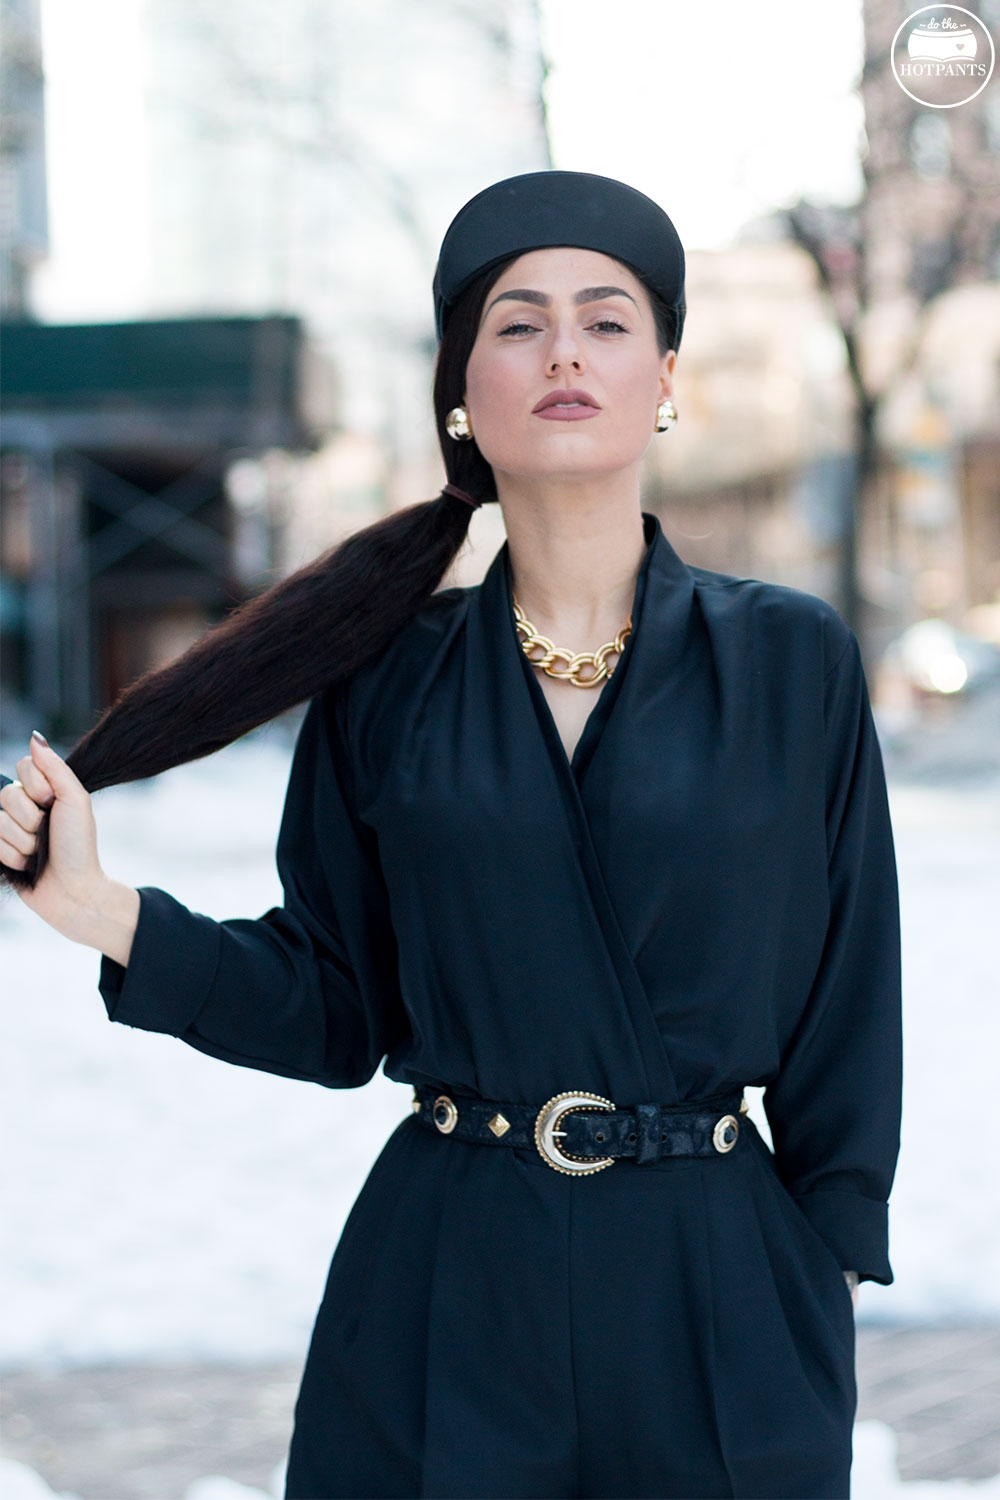 Do The Hotpants Dana Suchow Black Goth Jumpsuit Side Ponytail Leather Hat Winter Fashion Woman in Snow IMG_6471